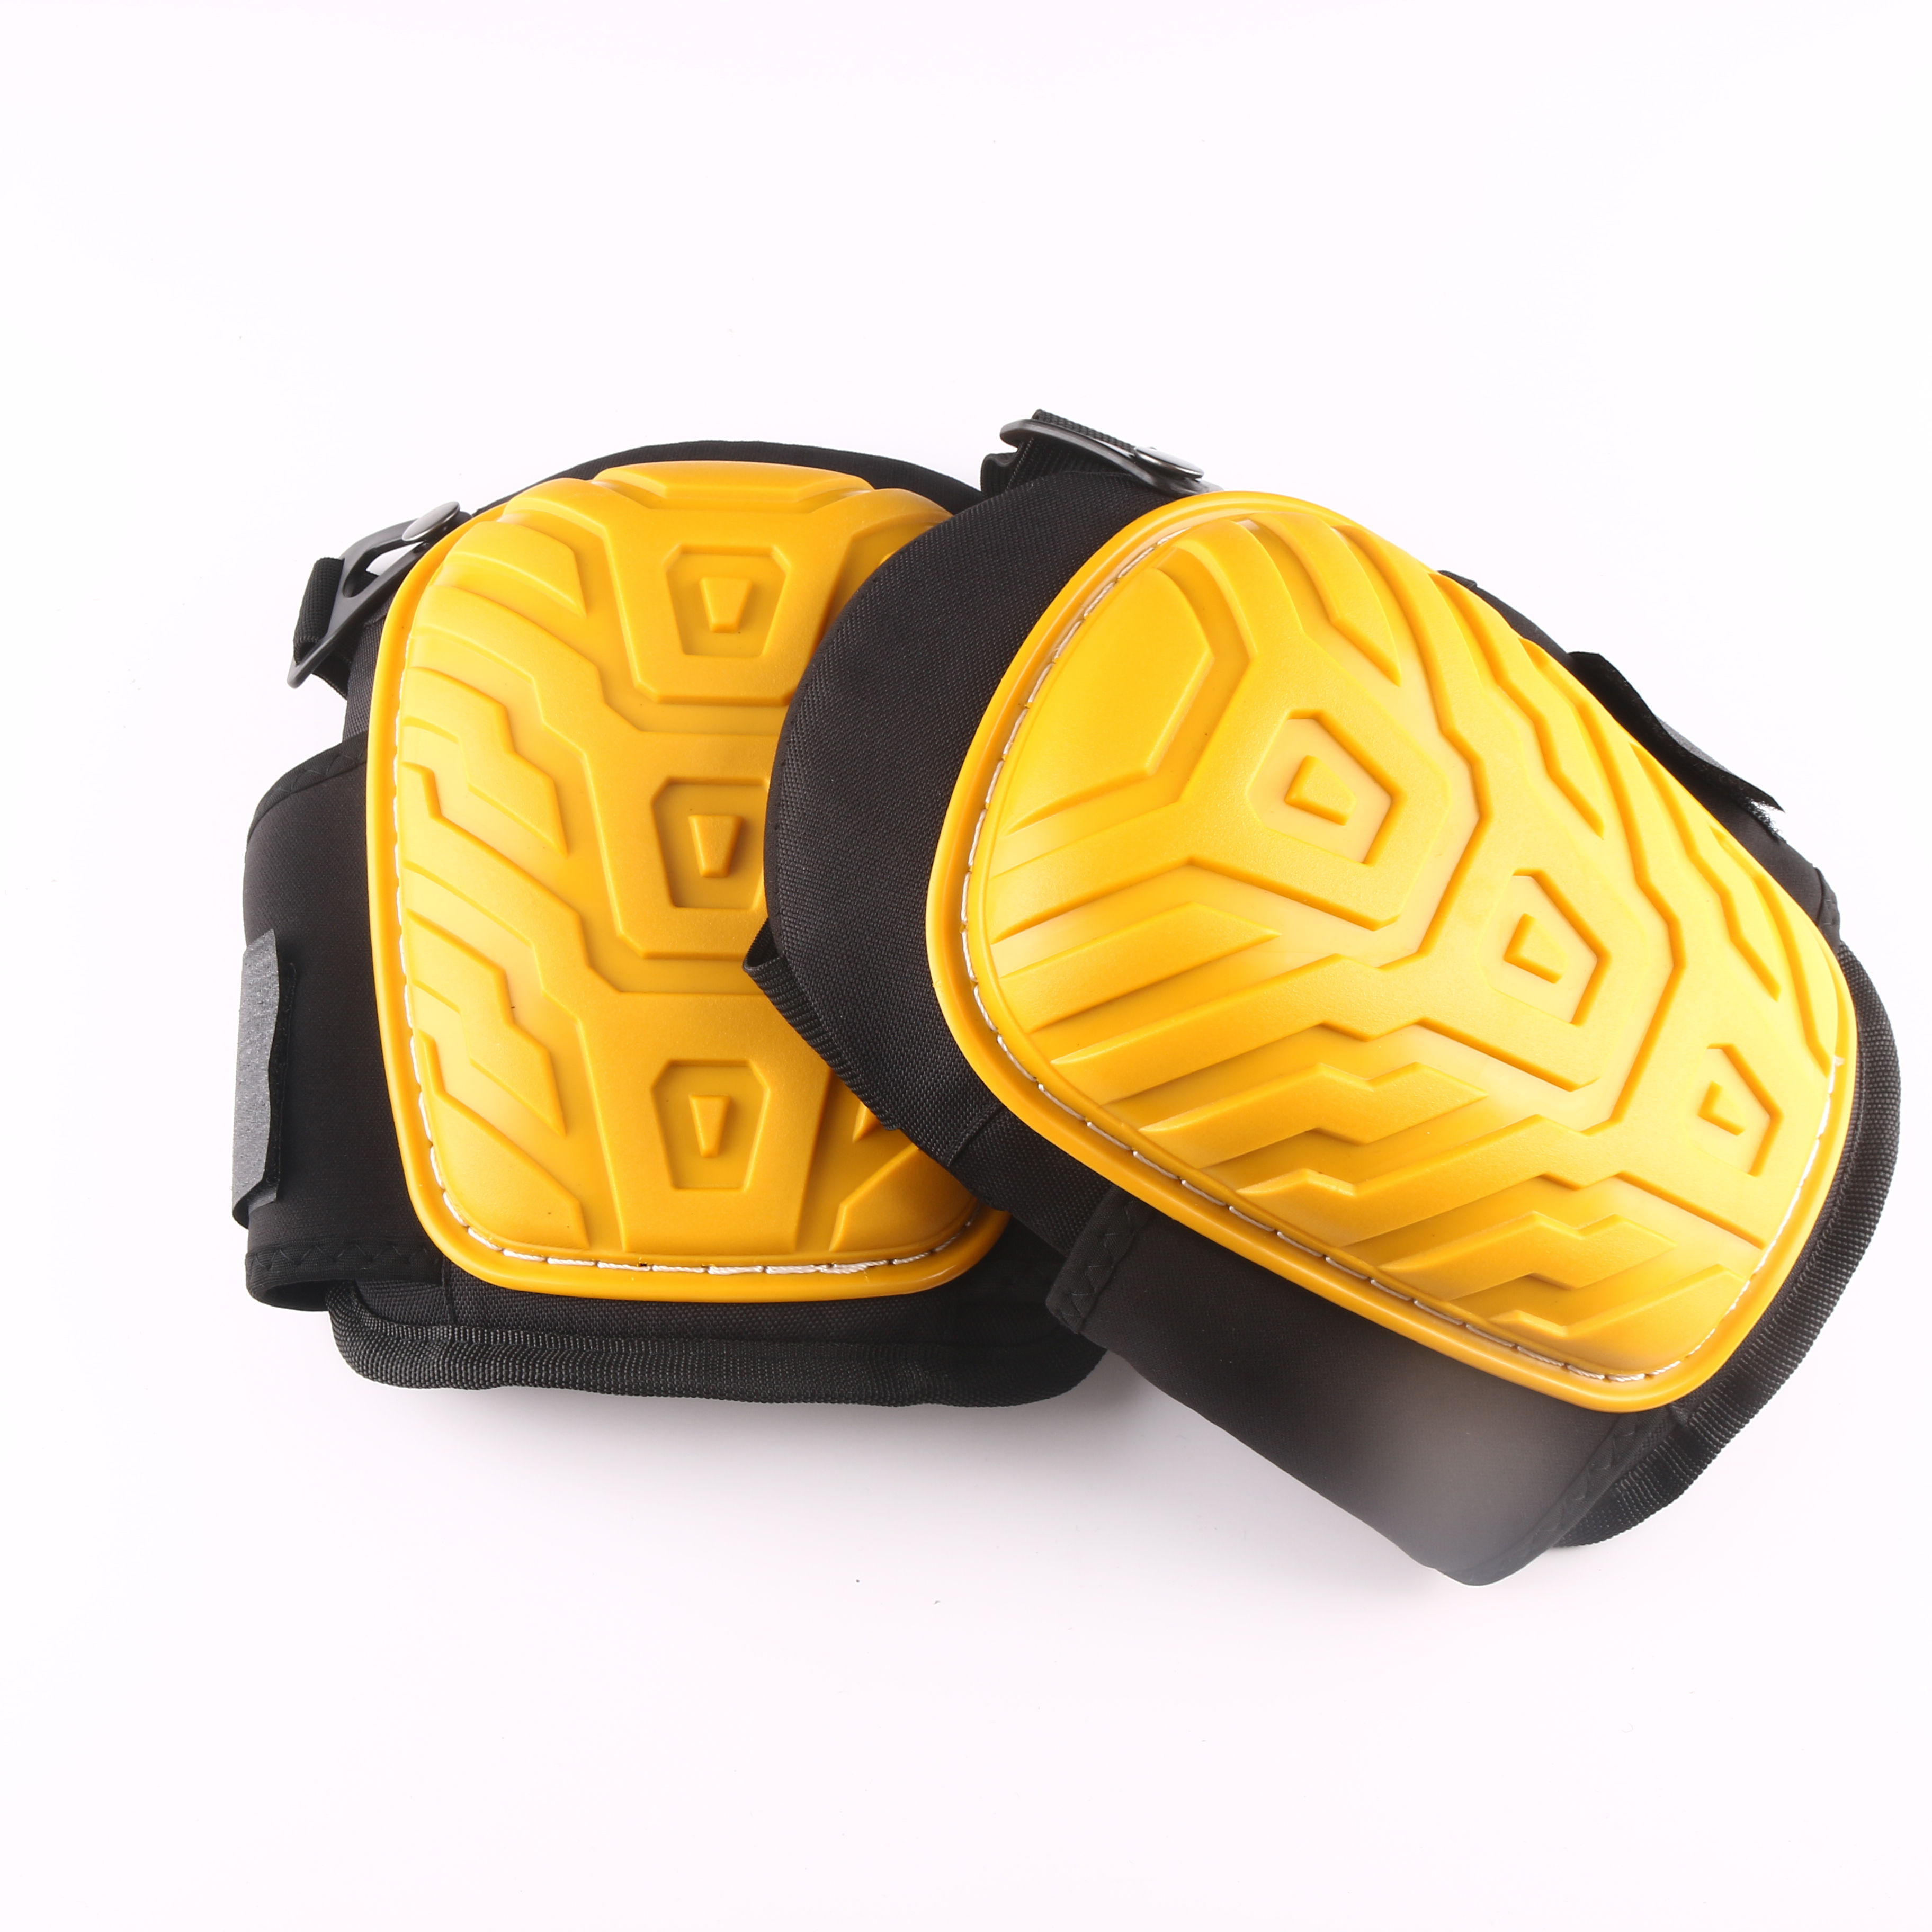 Heavy Duty Professional Protective Gel Knee Pads for work